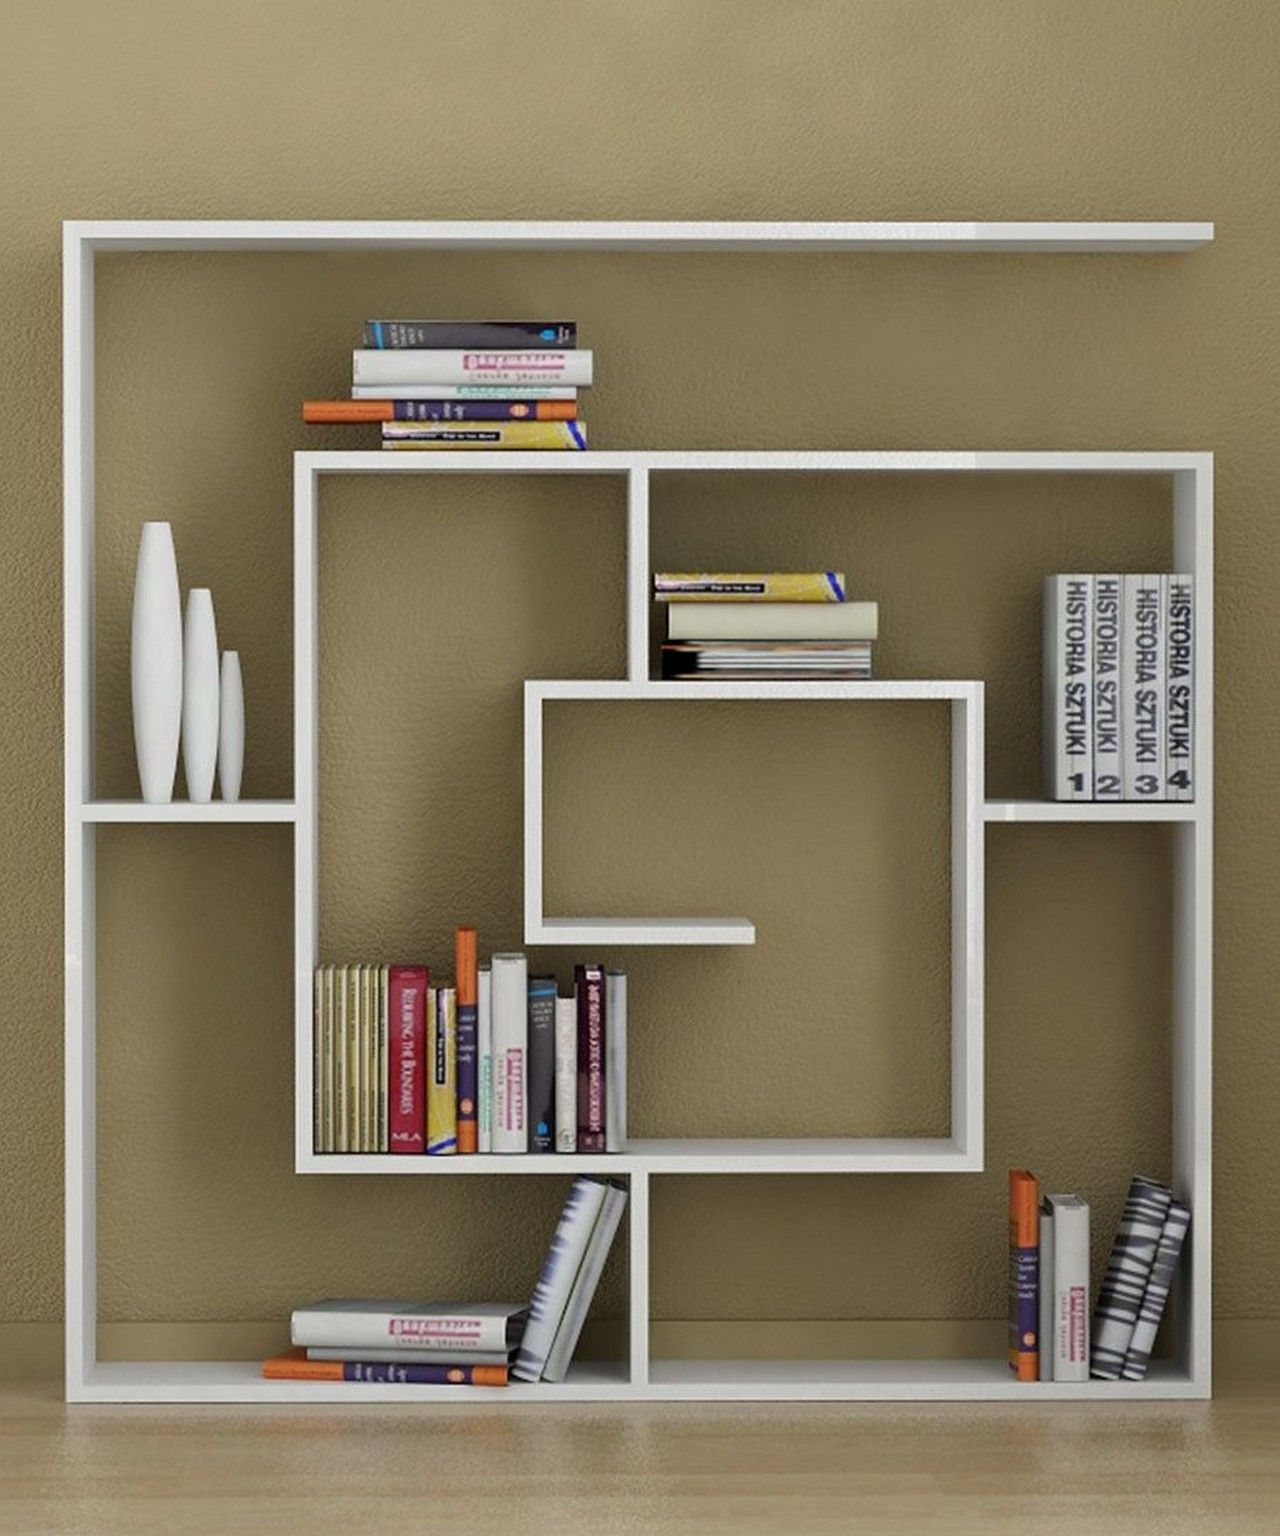 nice looking modern shelving. Furniture  Furnishing Amazing White Book Shelf On Cream Wall Shelves Shelving Books Modern Bookshelves Bookcase Design Built Bookcases Ideas Archaic Used Architecture Fair Building